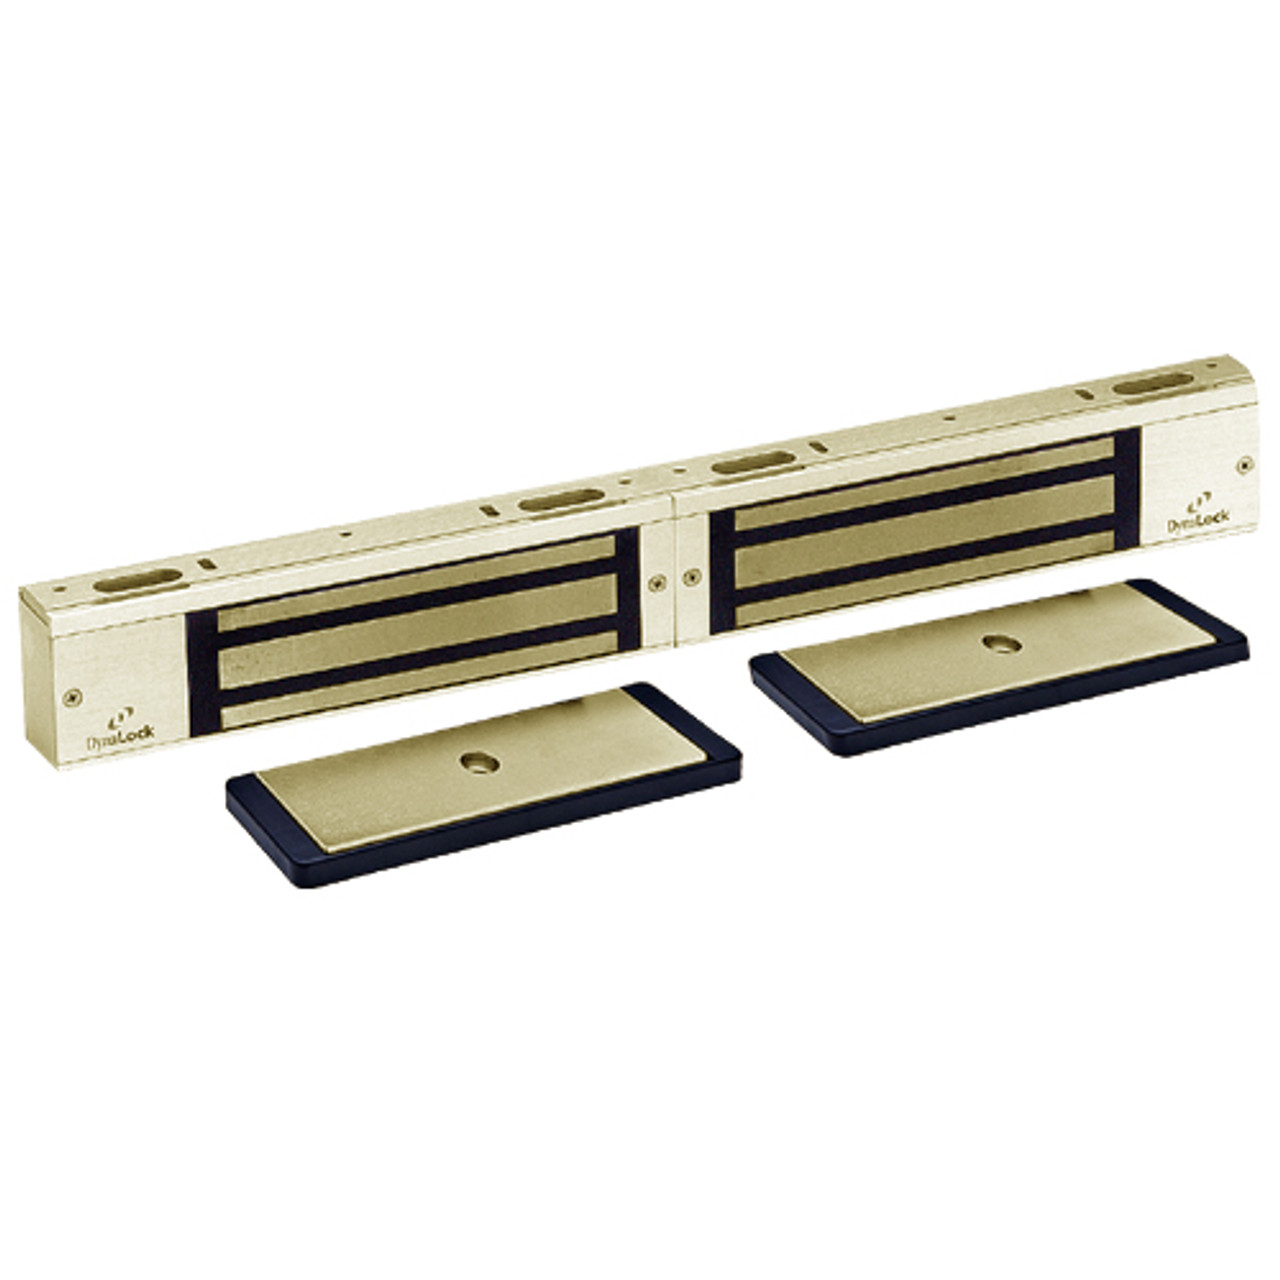 3002-US4 DynaLock 3000 Series 1500 LBs Double Electromagnetic Lock for Outswing Door in Satin Brass